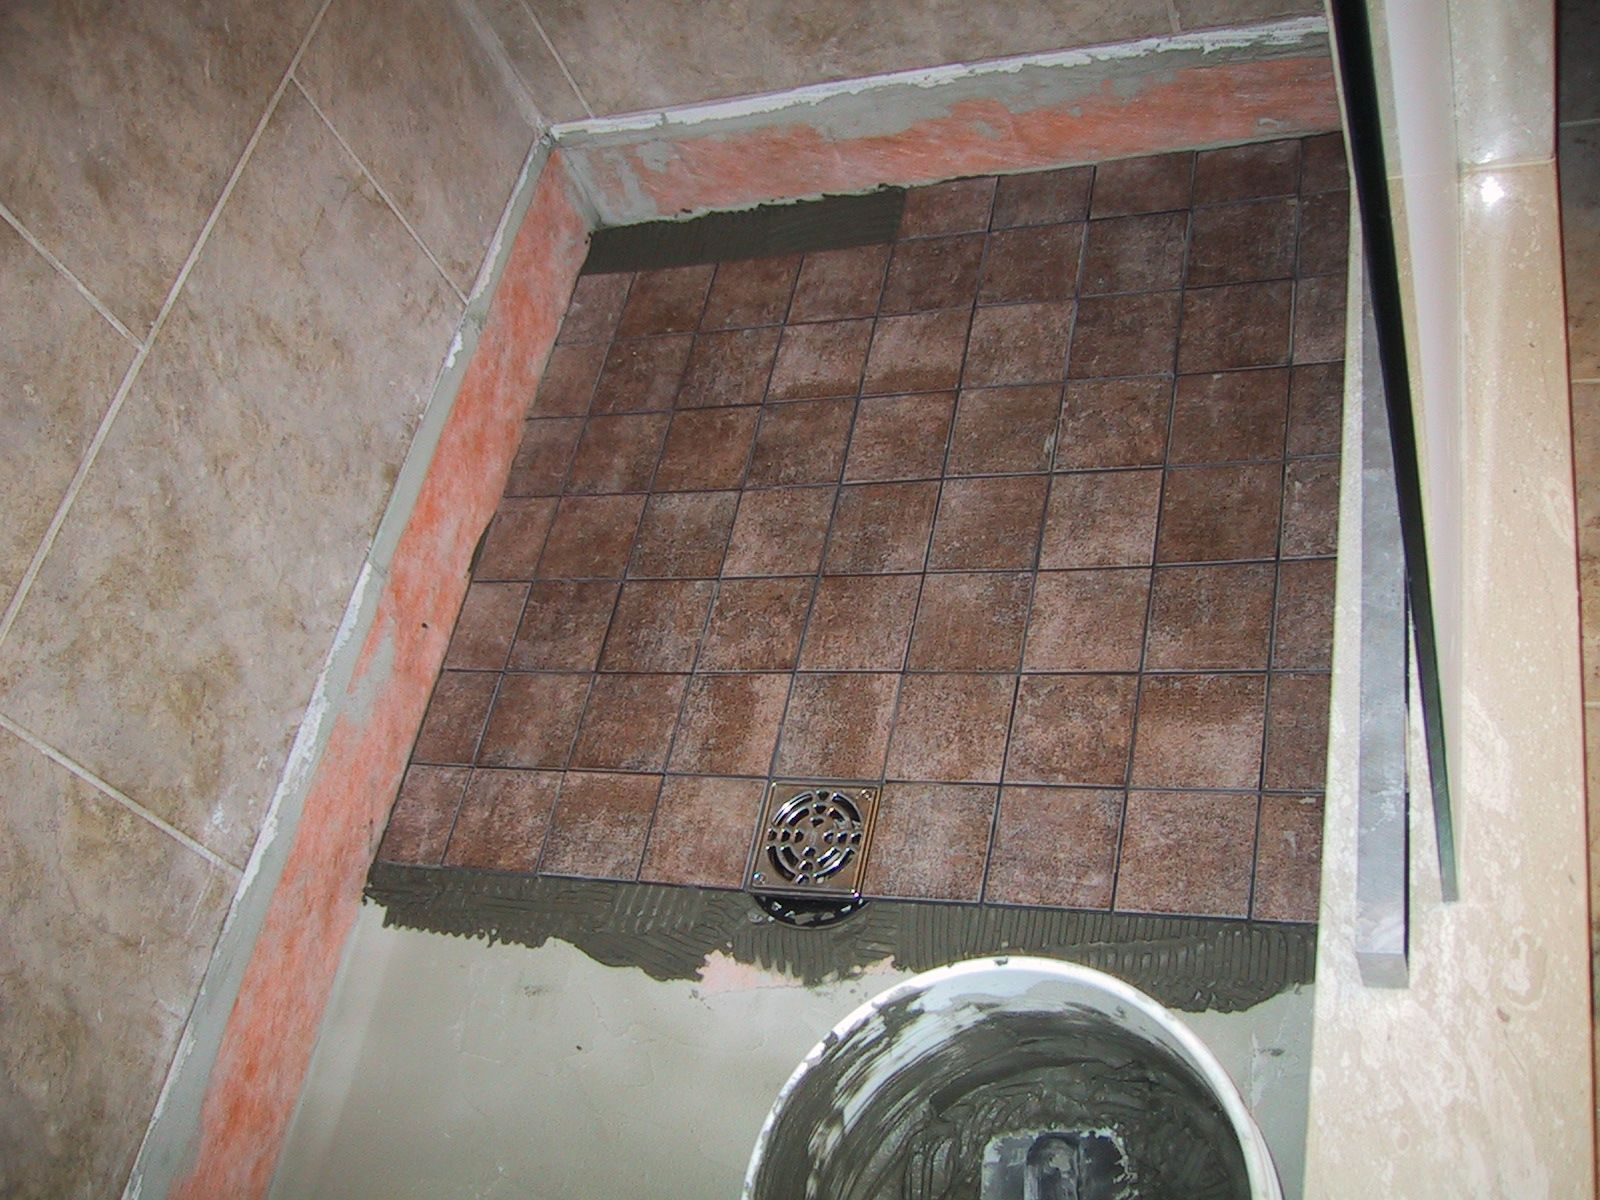 bathroom tile ideas | Shower Tile Photos | Pictures of Interior ...